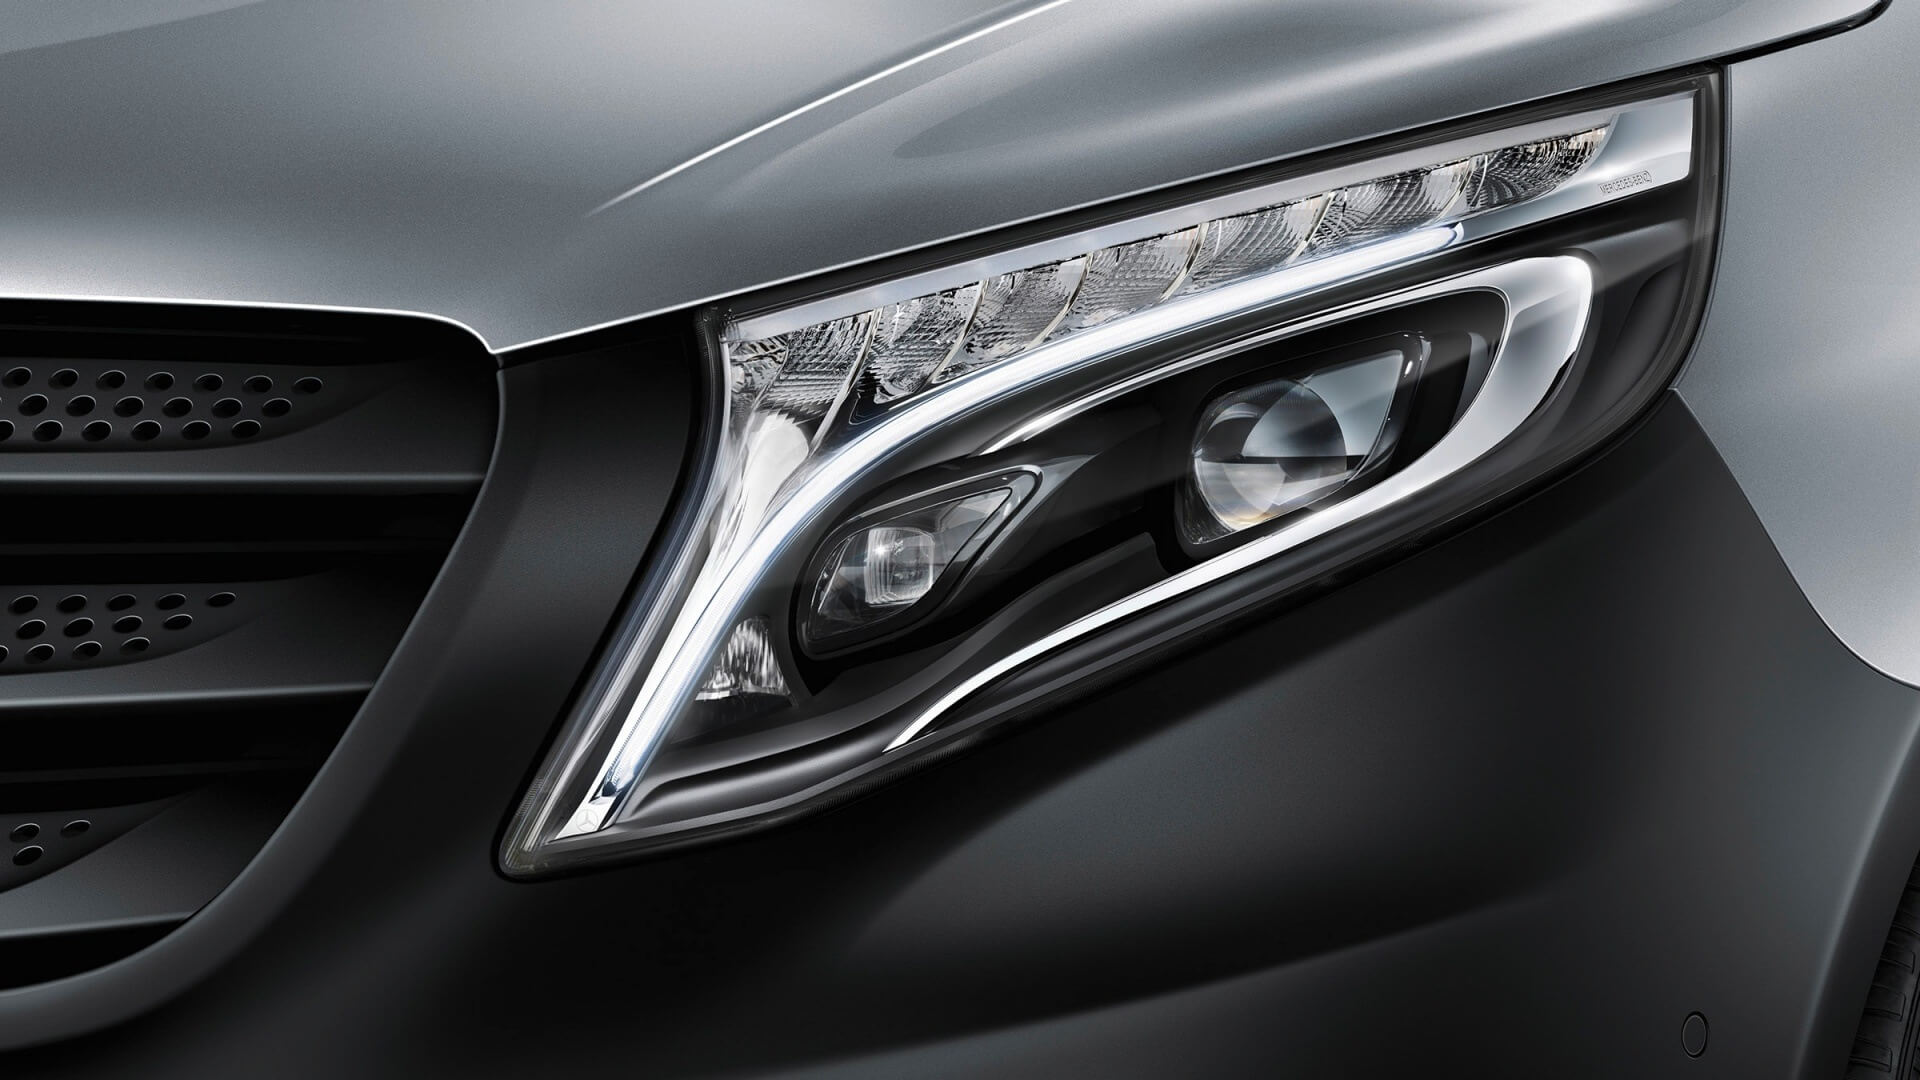 Clever headlights that adapt to the road ahead.